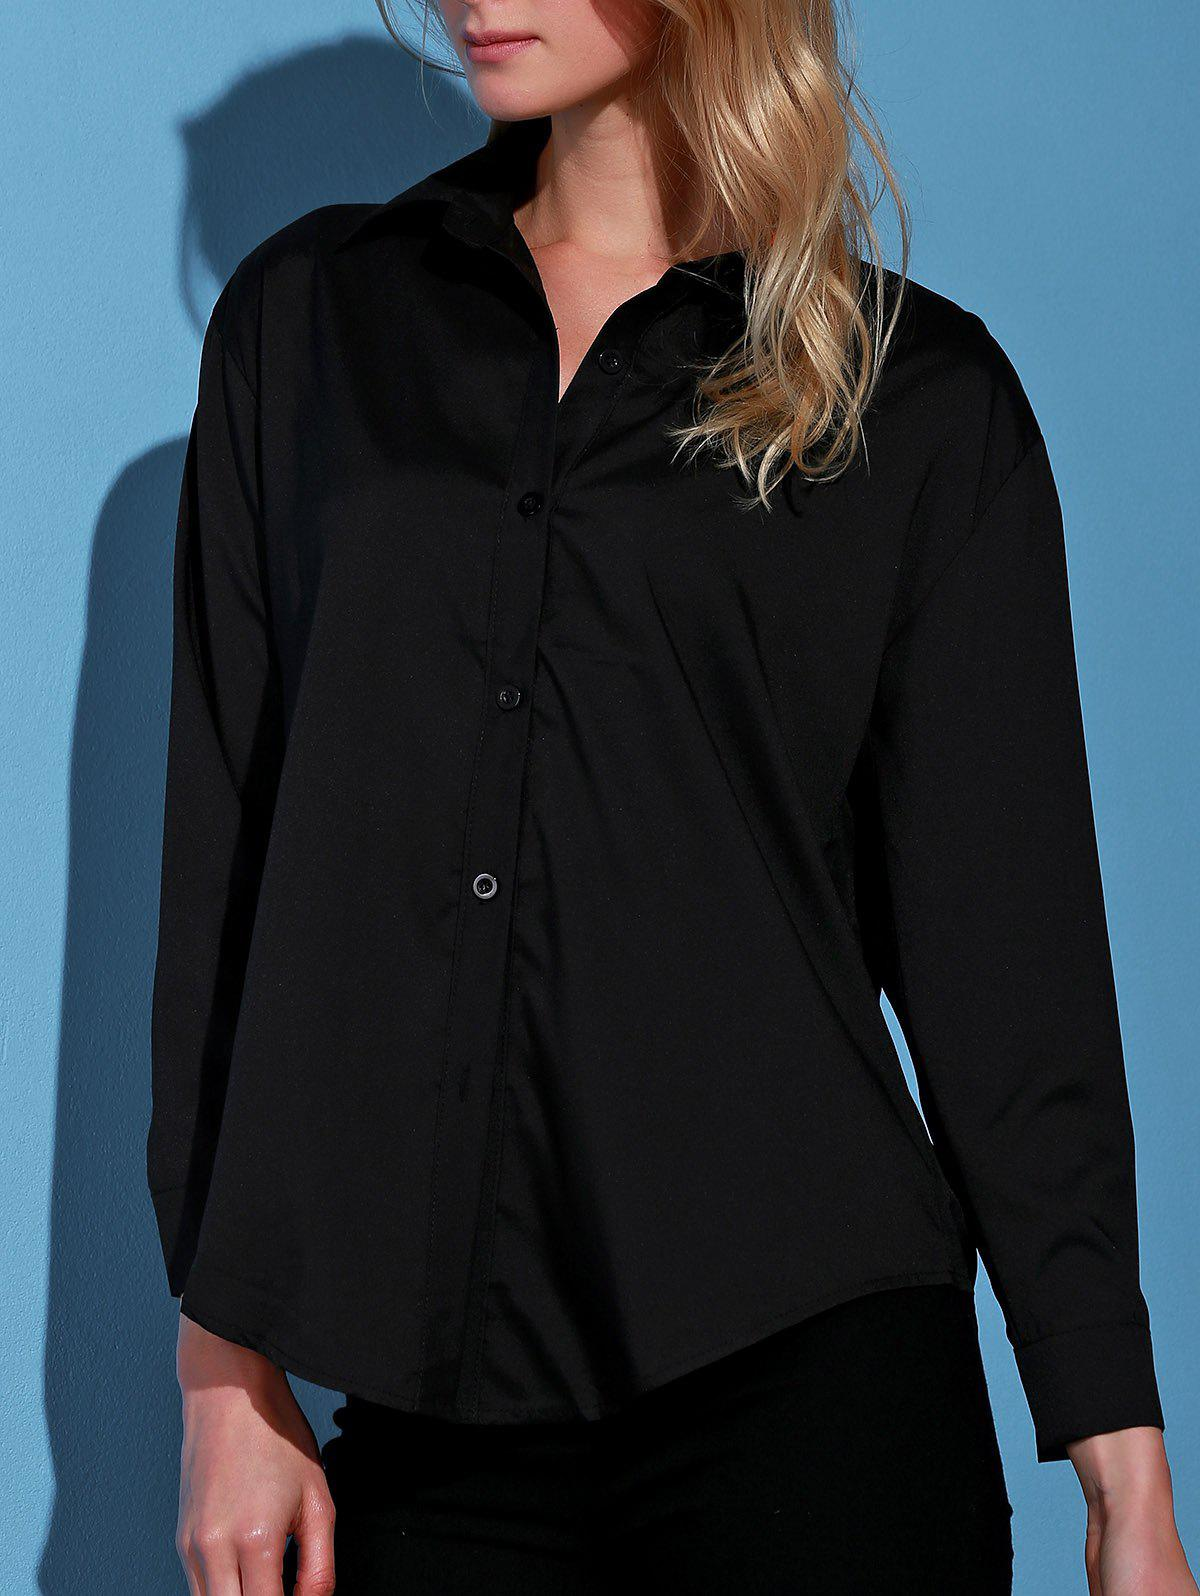 Stylish Turn-Down Collar Black Single-Breasted Long Sleeve Women's Blouse - BLACK L